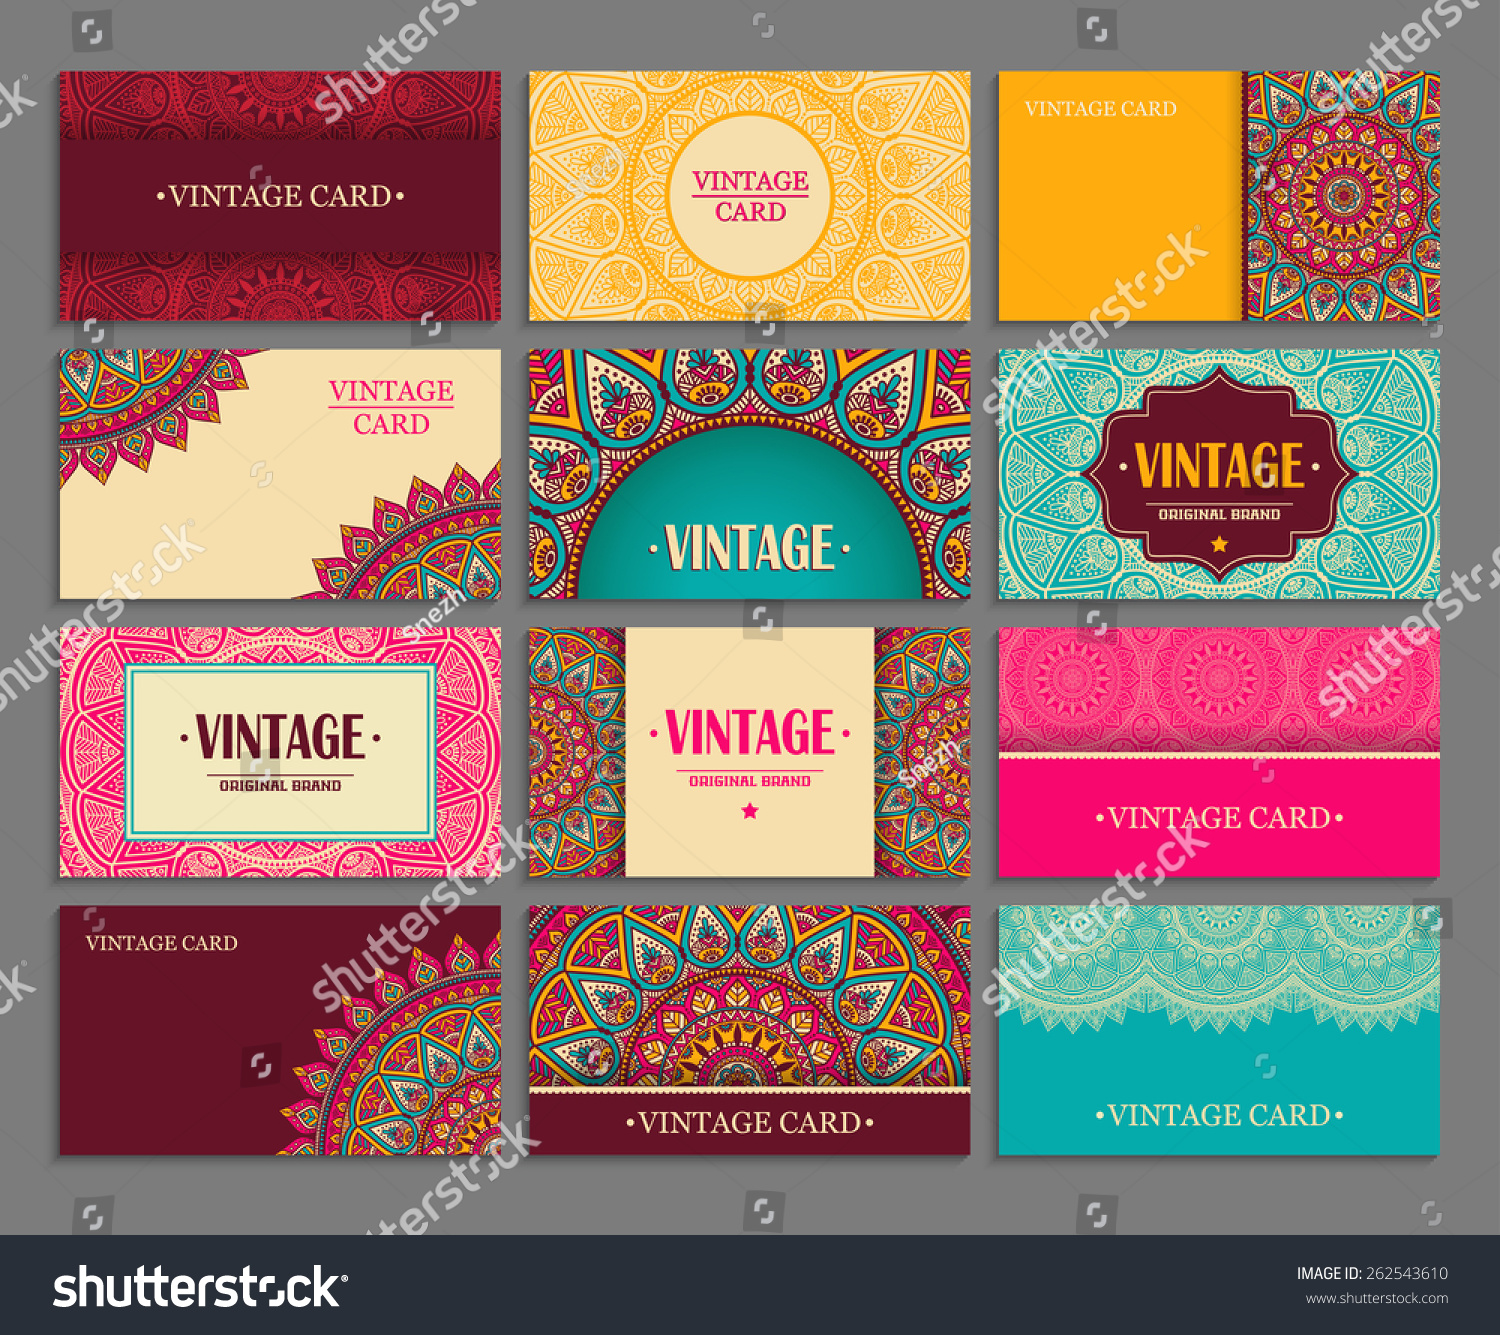 Business Card Collection Vintage Decorative Elements Stock Vector ...